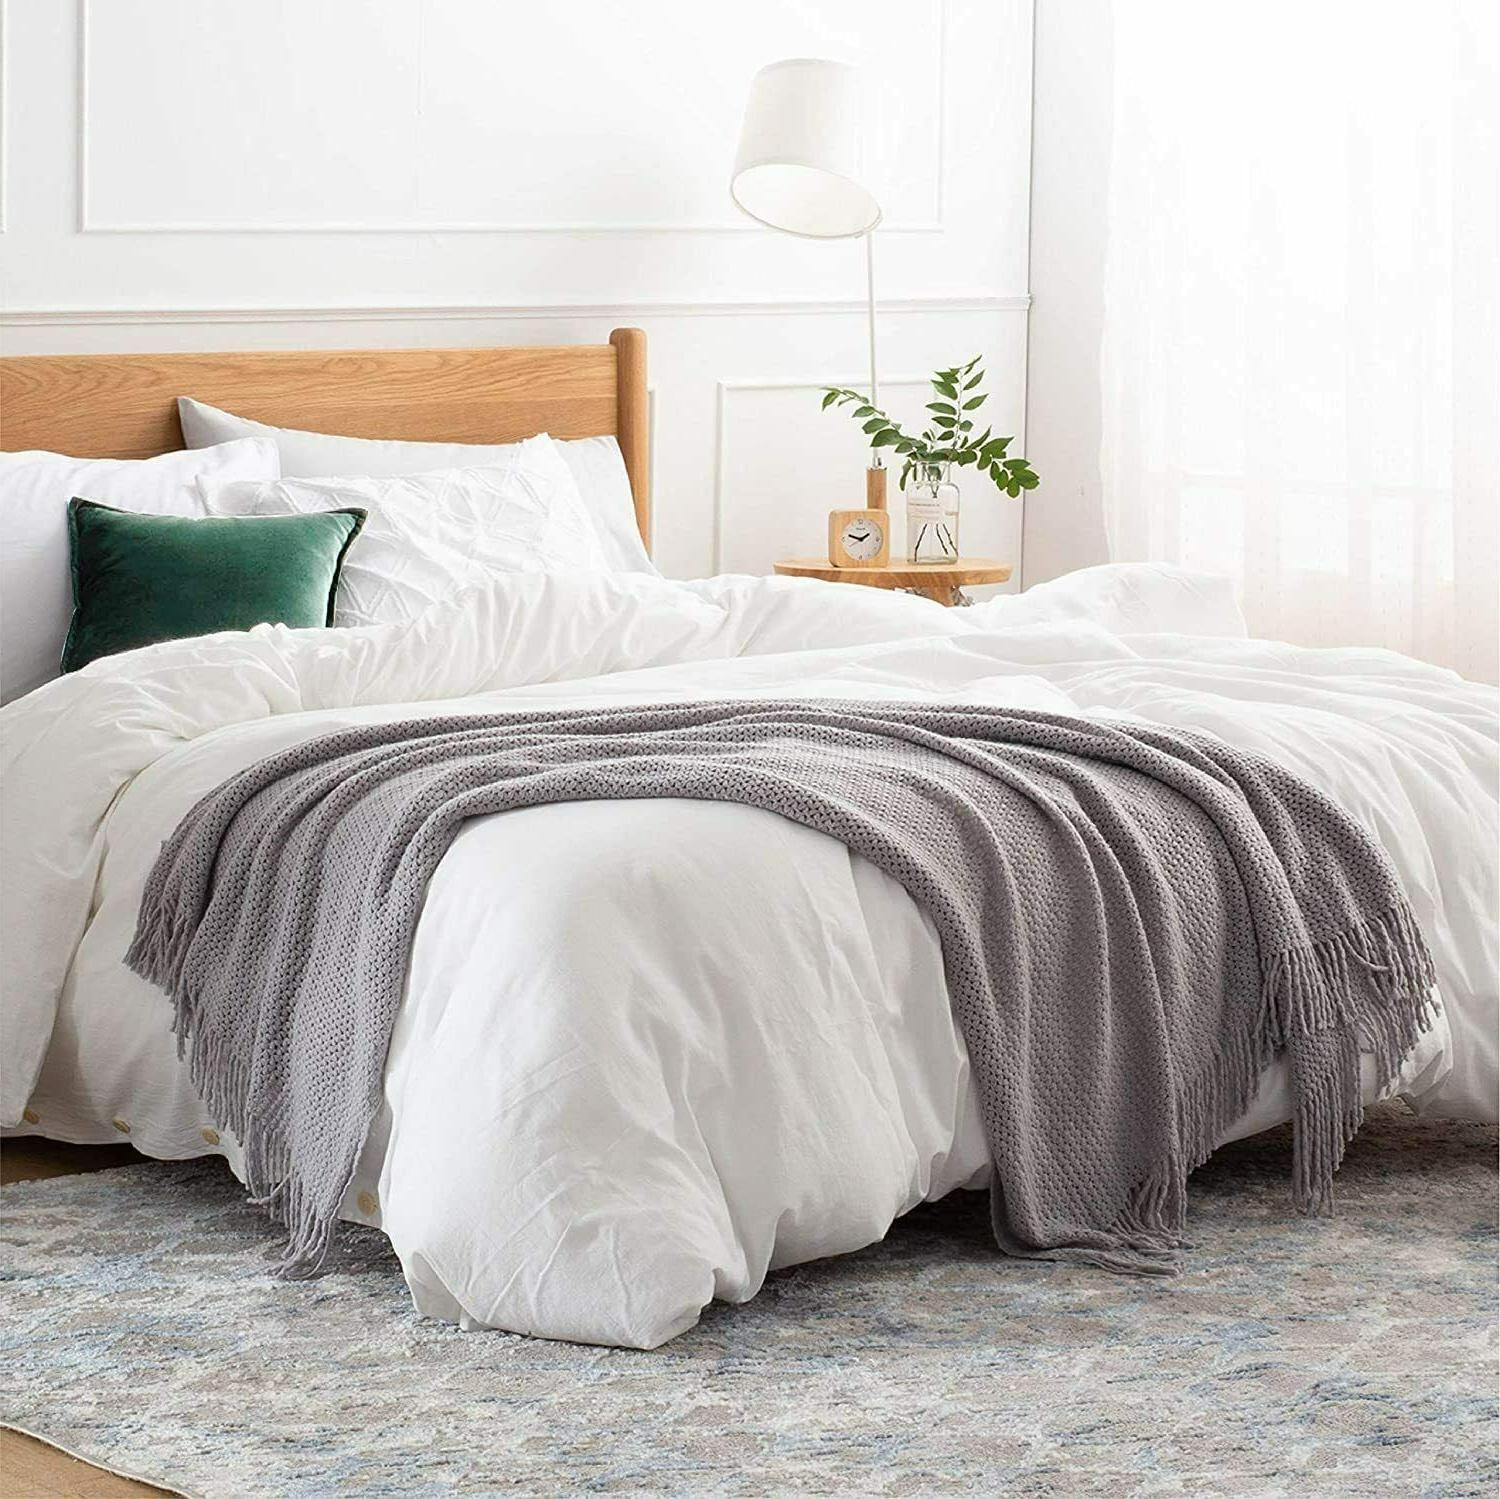 Bedsure Throw Couch Soft Blanket Lightwe...